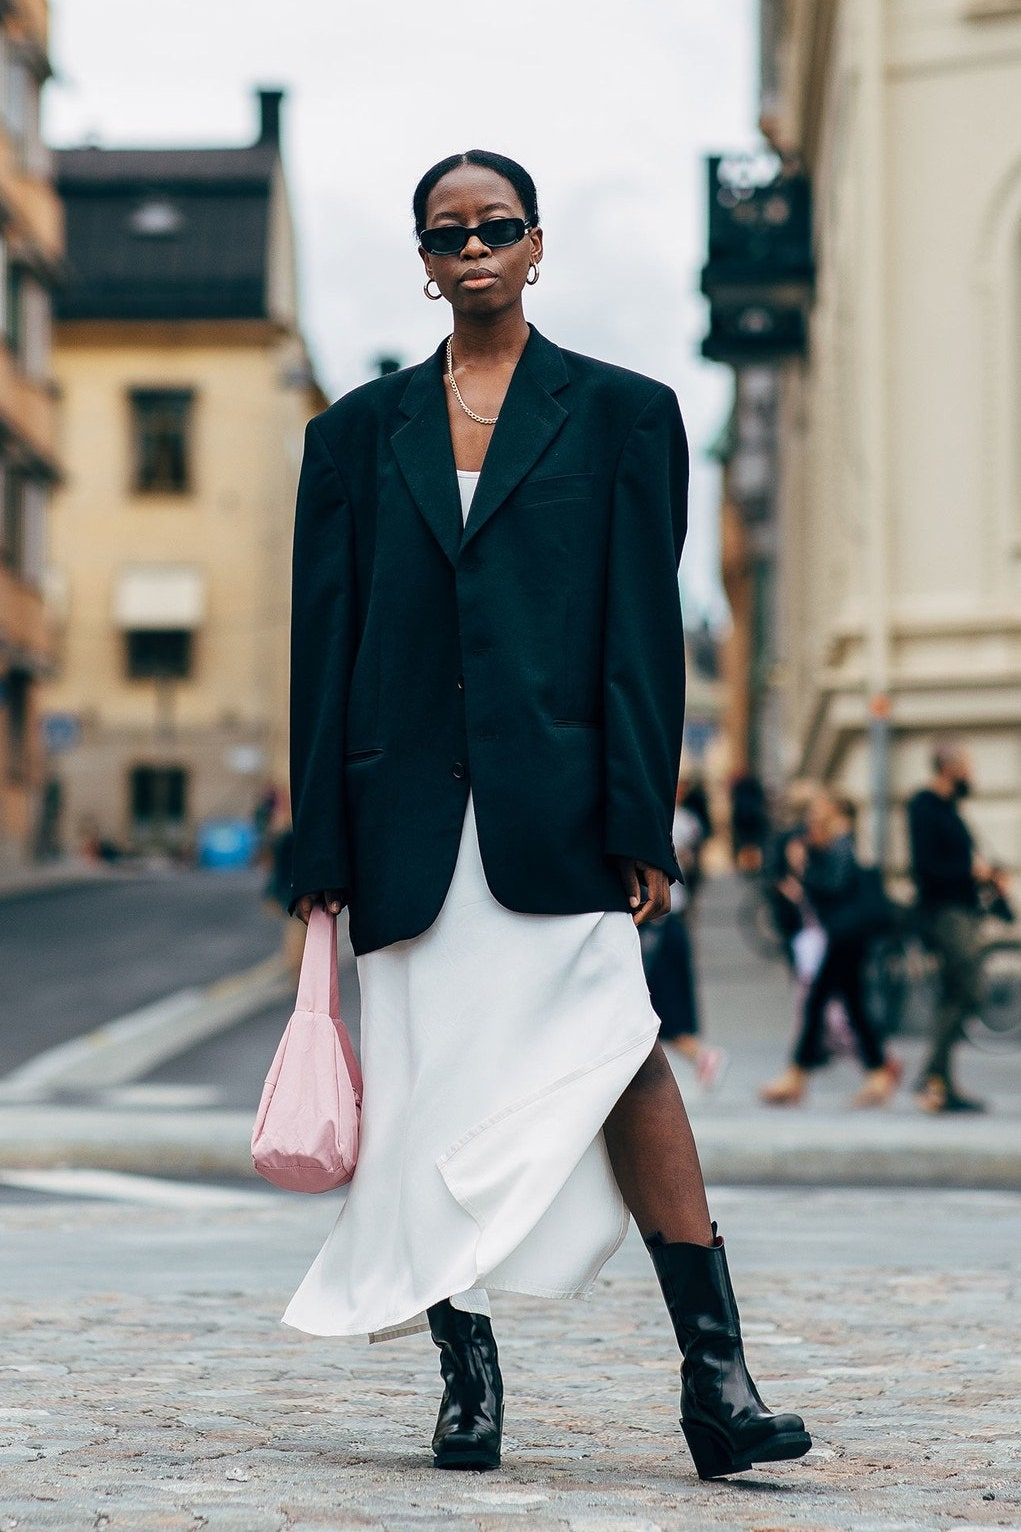 White Dress Spring Outfit Inspiration — Sylvie Mus Street Style — Black blazer, white slip dress, pink bag, and Western boots